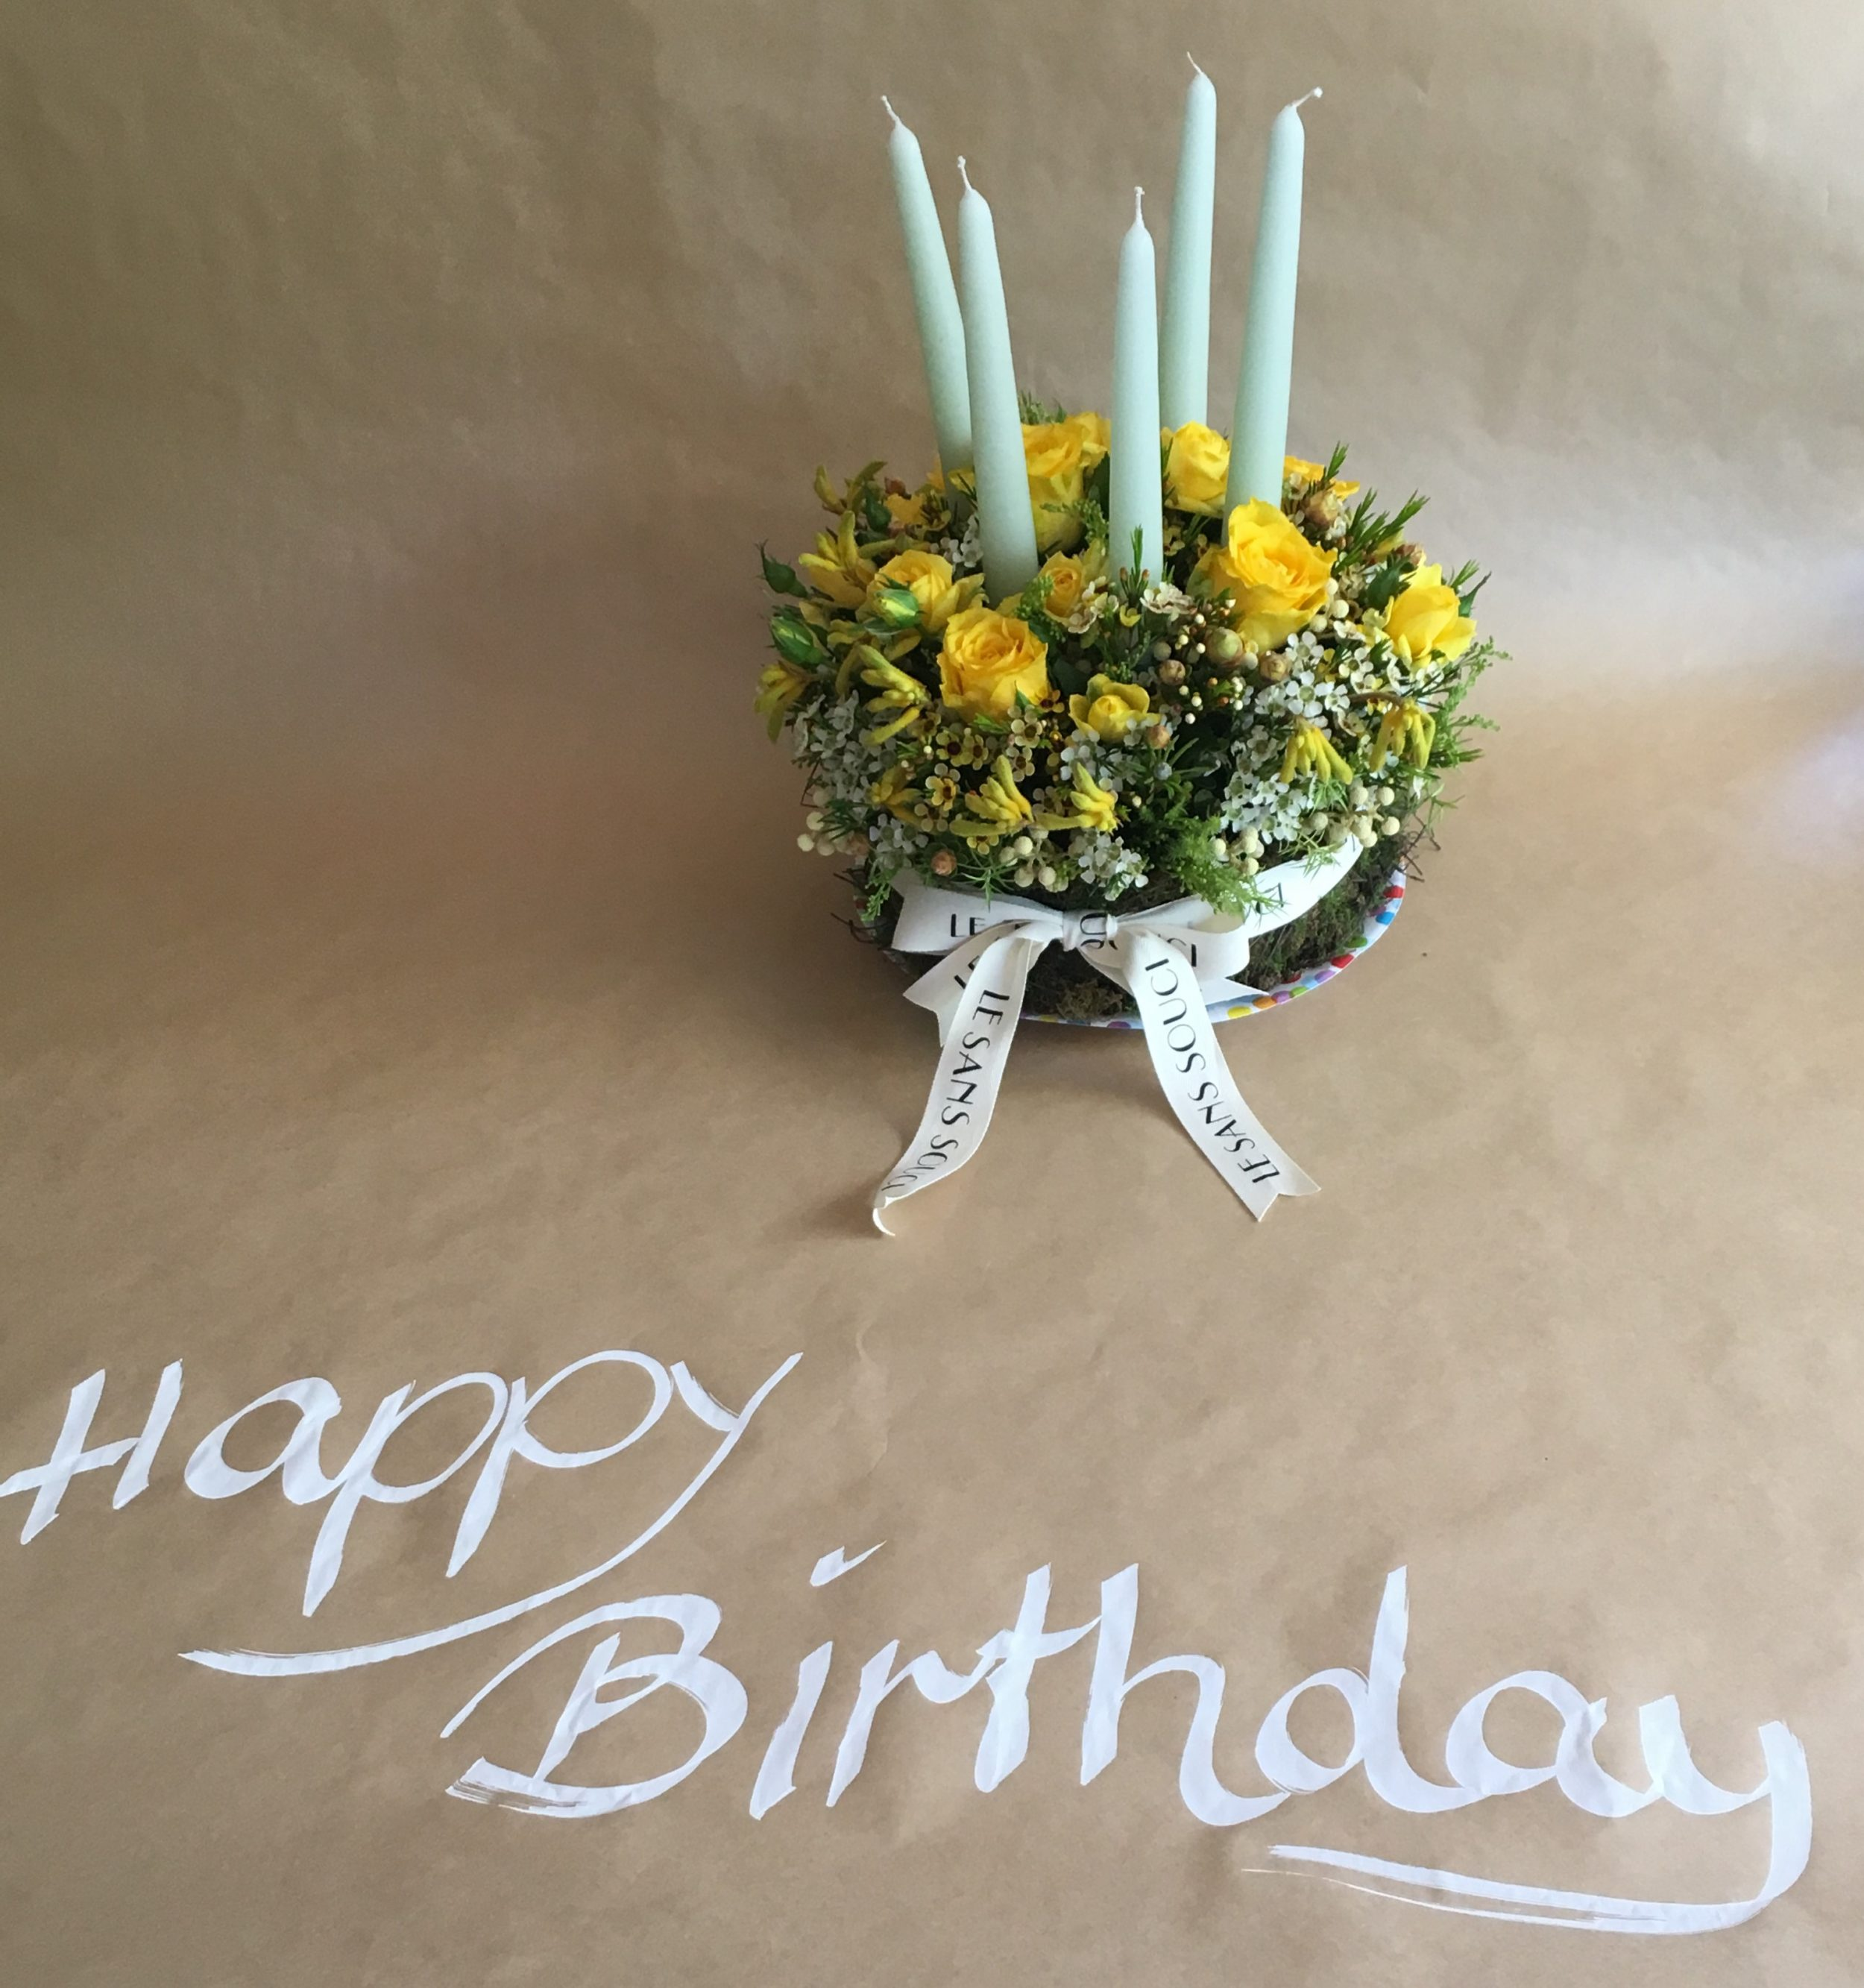 Happy Birthday Floral Cake With Candles